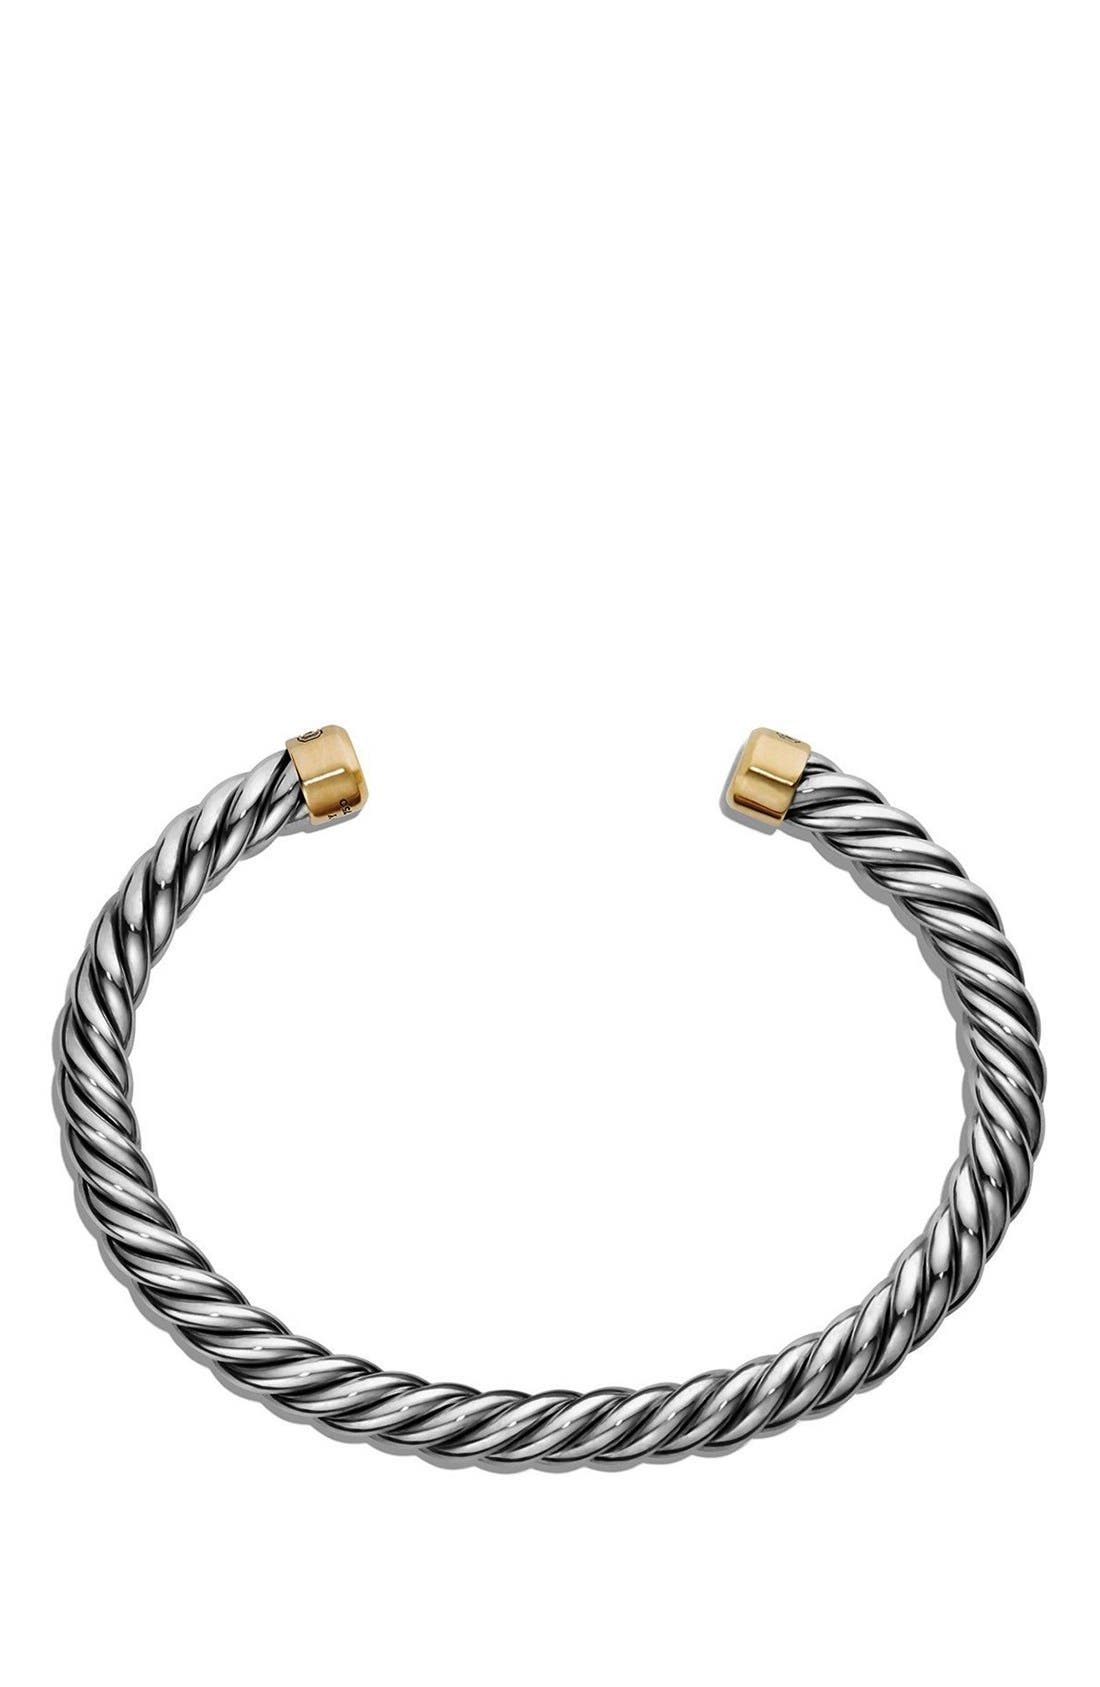 'Cable Classics' Cuff Bracelet with 18K Gold,                             Alternate thumbnail 2, color,                             Silver/ Gold